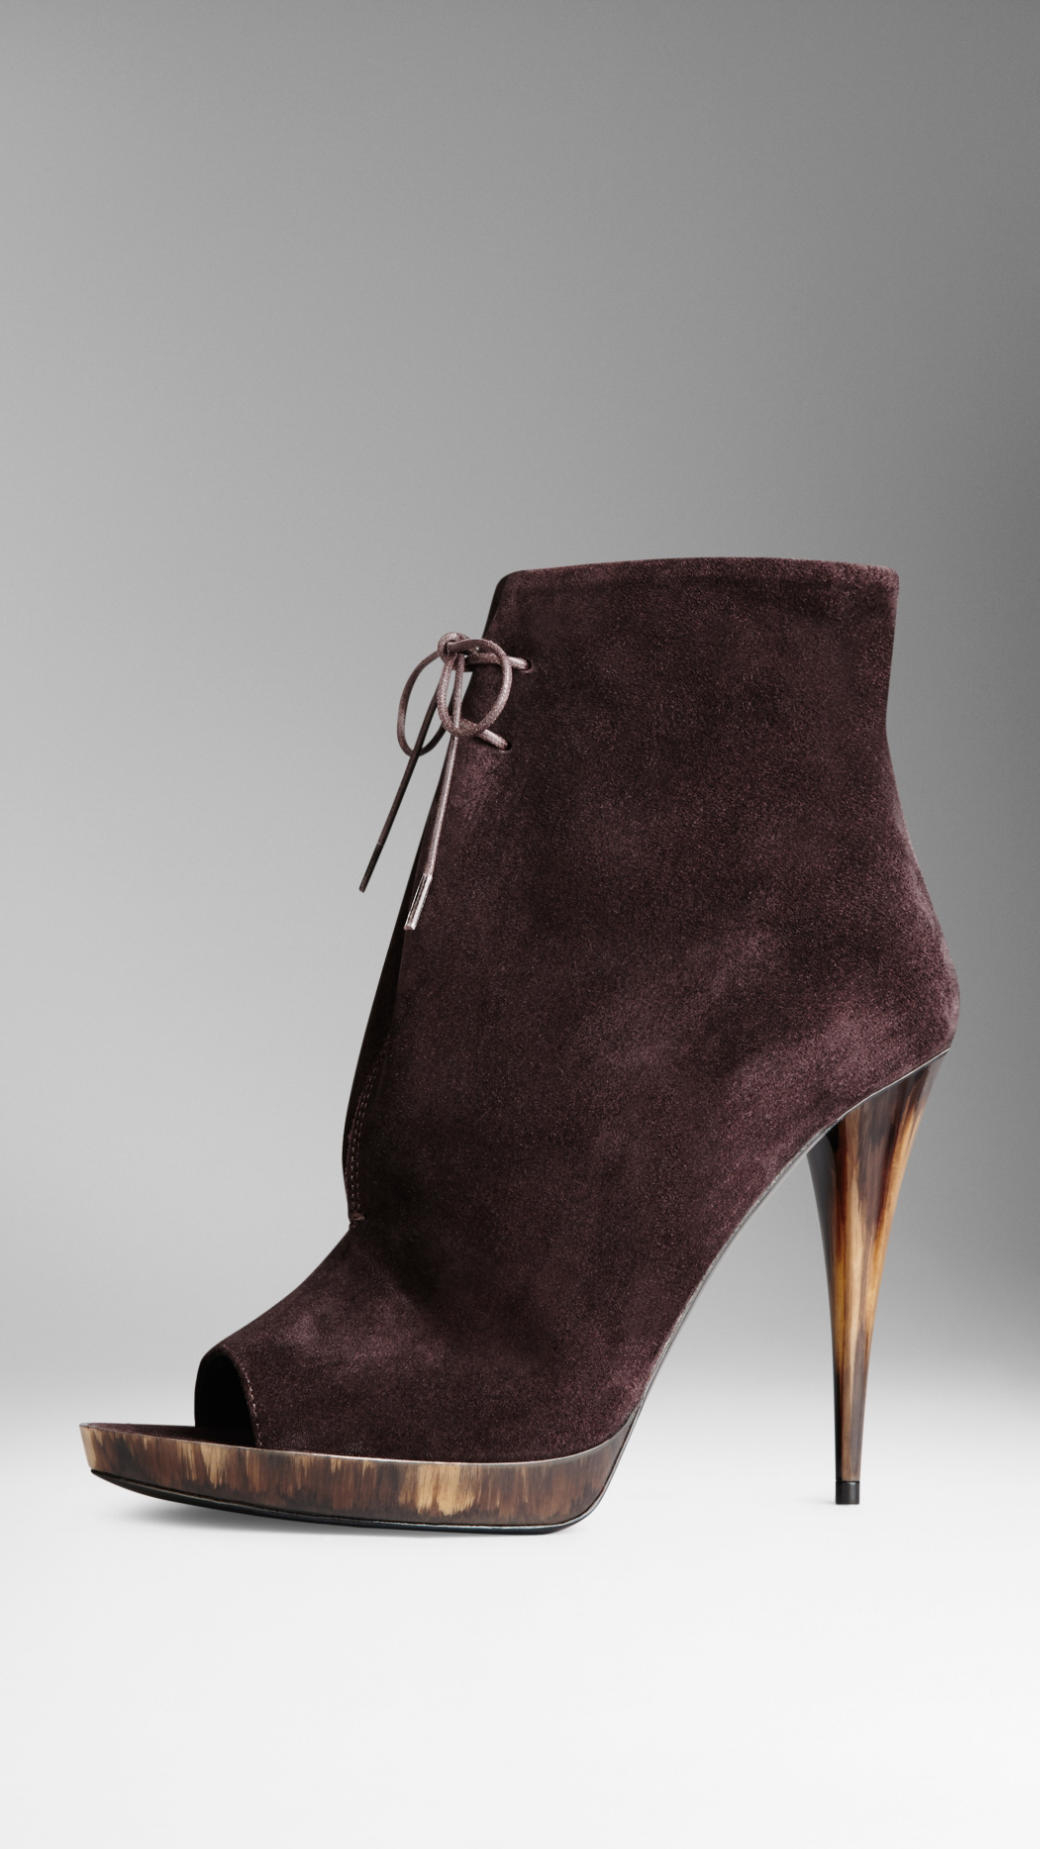 Burberry Suede Peep-Toe Ankle Boots in Purple